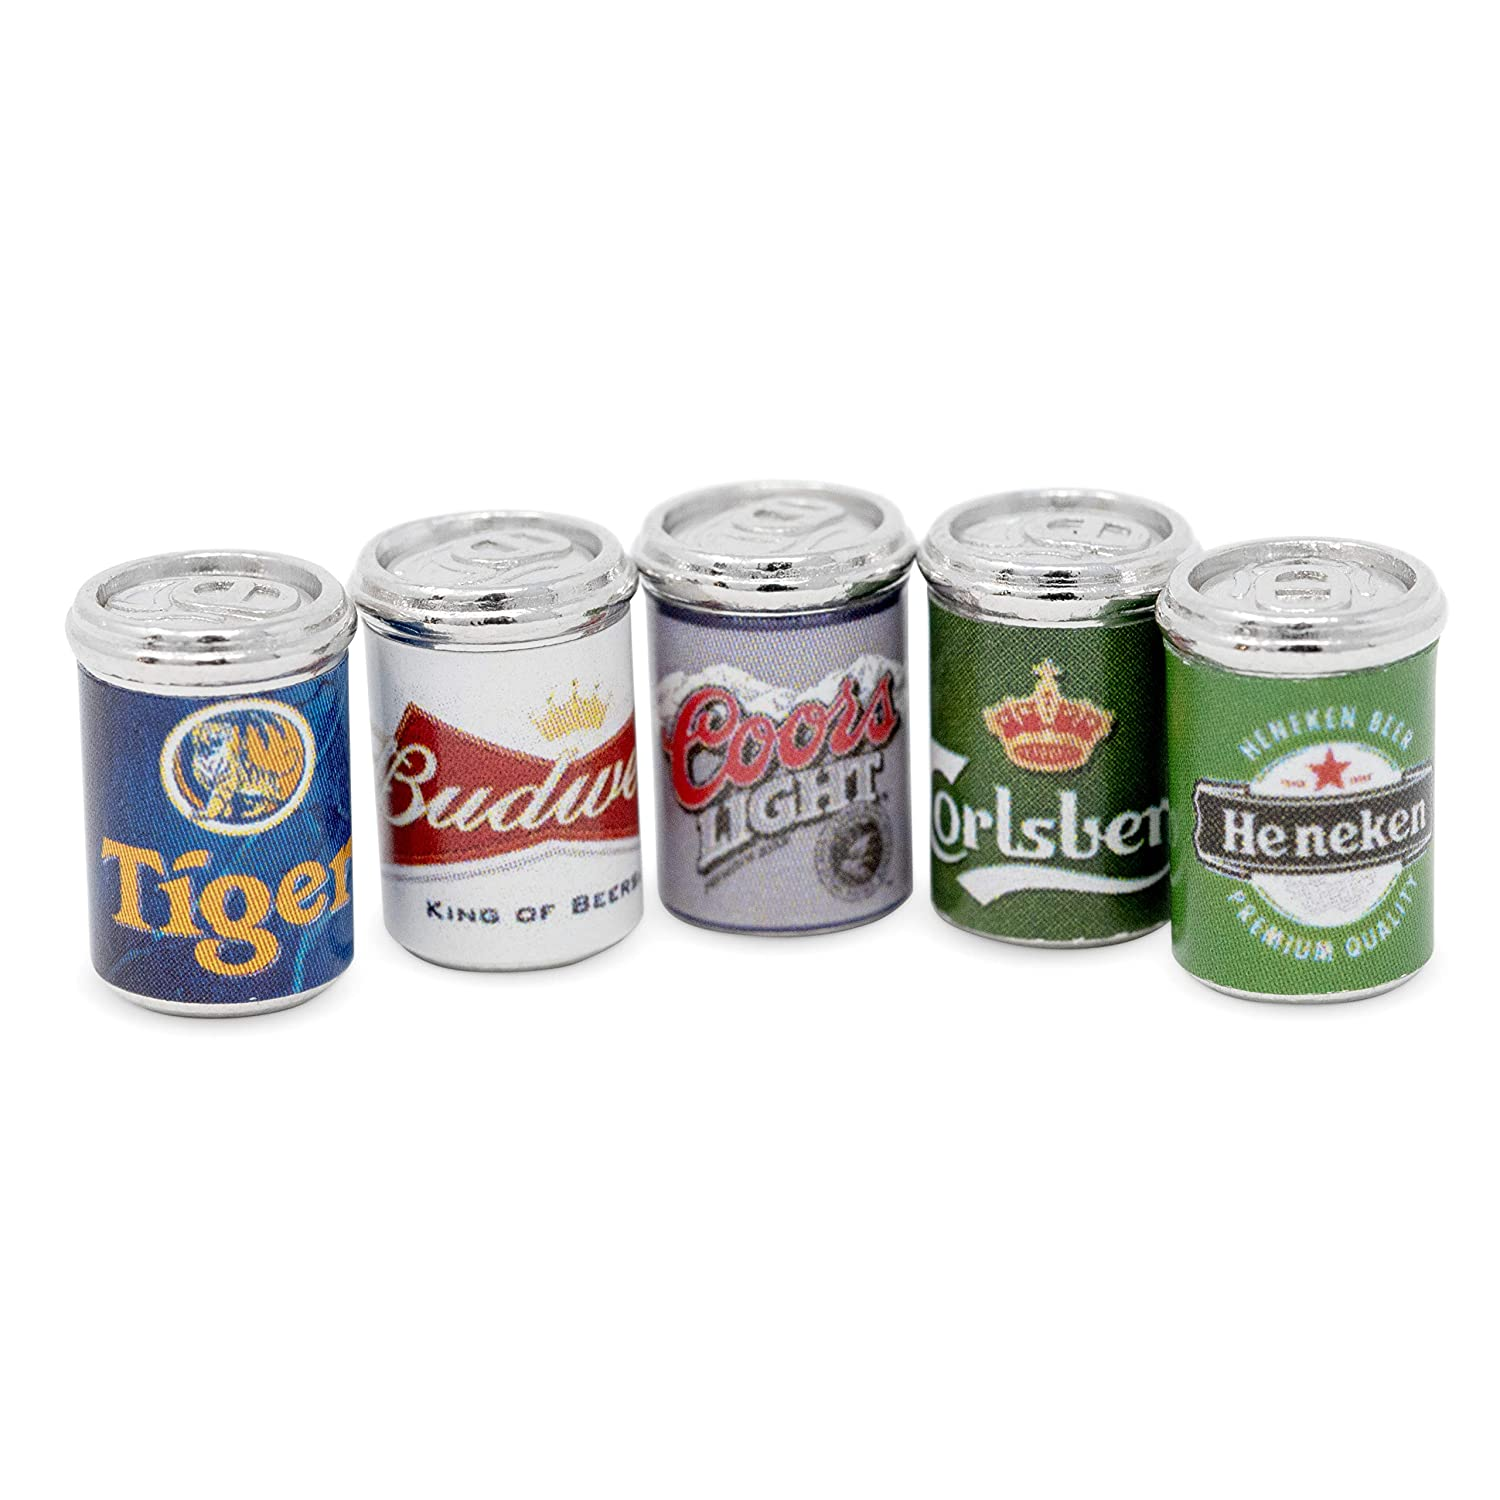 American Heritage Industries Dollhouse Beer Cans- Set of 5 1:12 Scale Dollhouse Beer Cans, with Realistic Looking Mini Beer Cans, Fun Addition to Dollhouses or Fairy Gardens, an Product